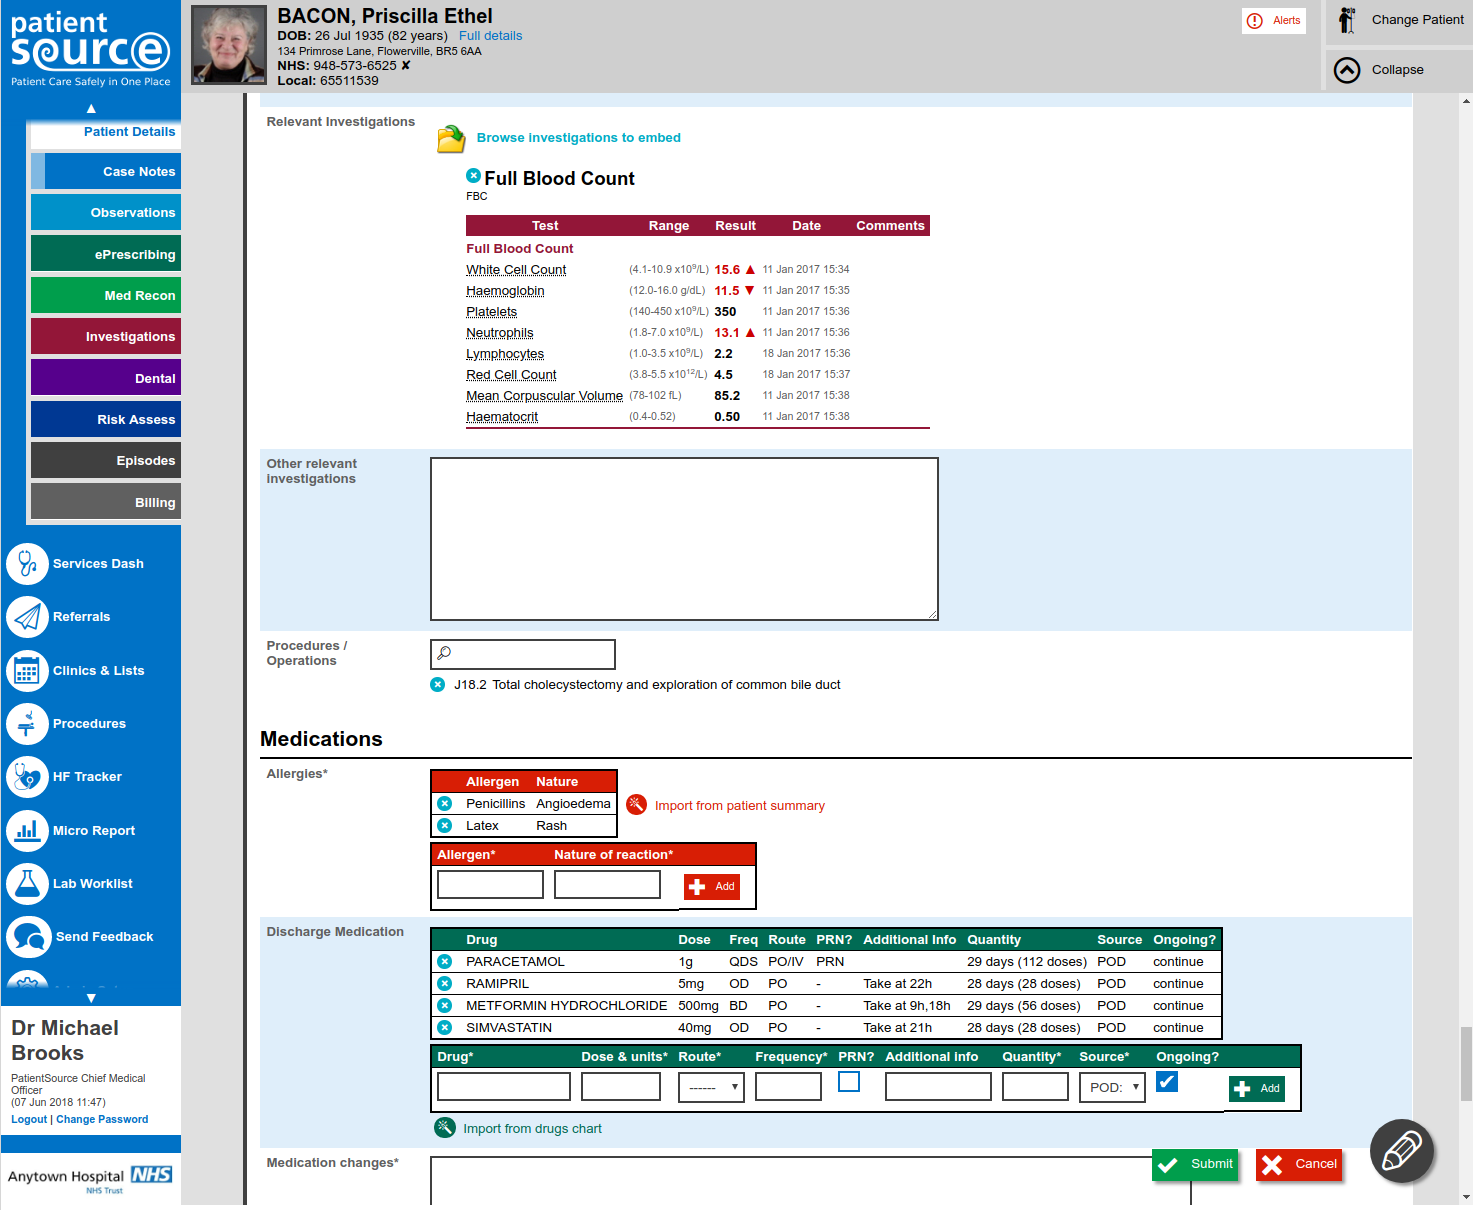 patientsource-case_notes_clinical_noting_proforma_electronic_forms.png